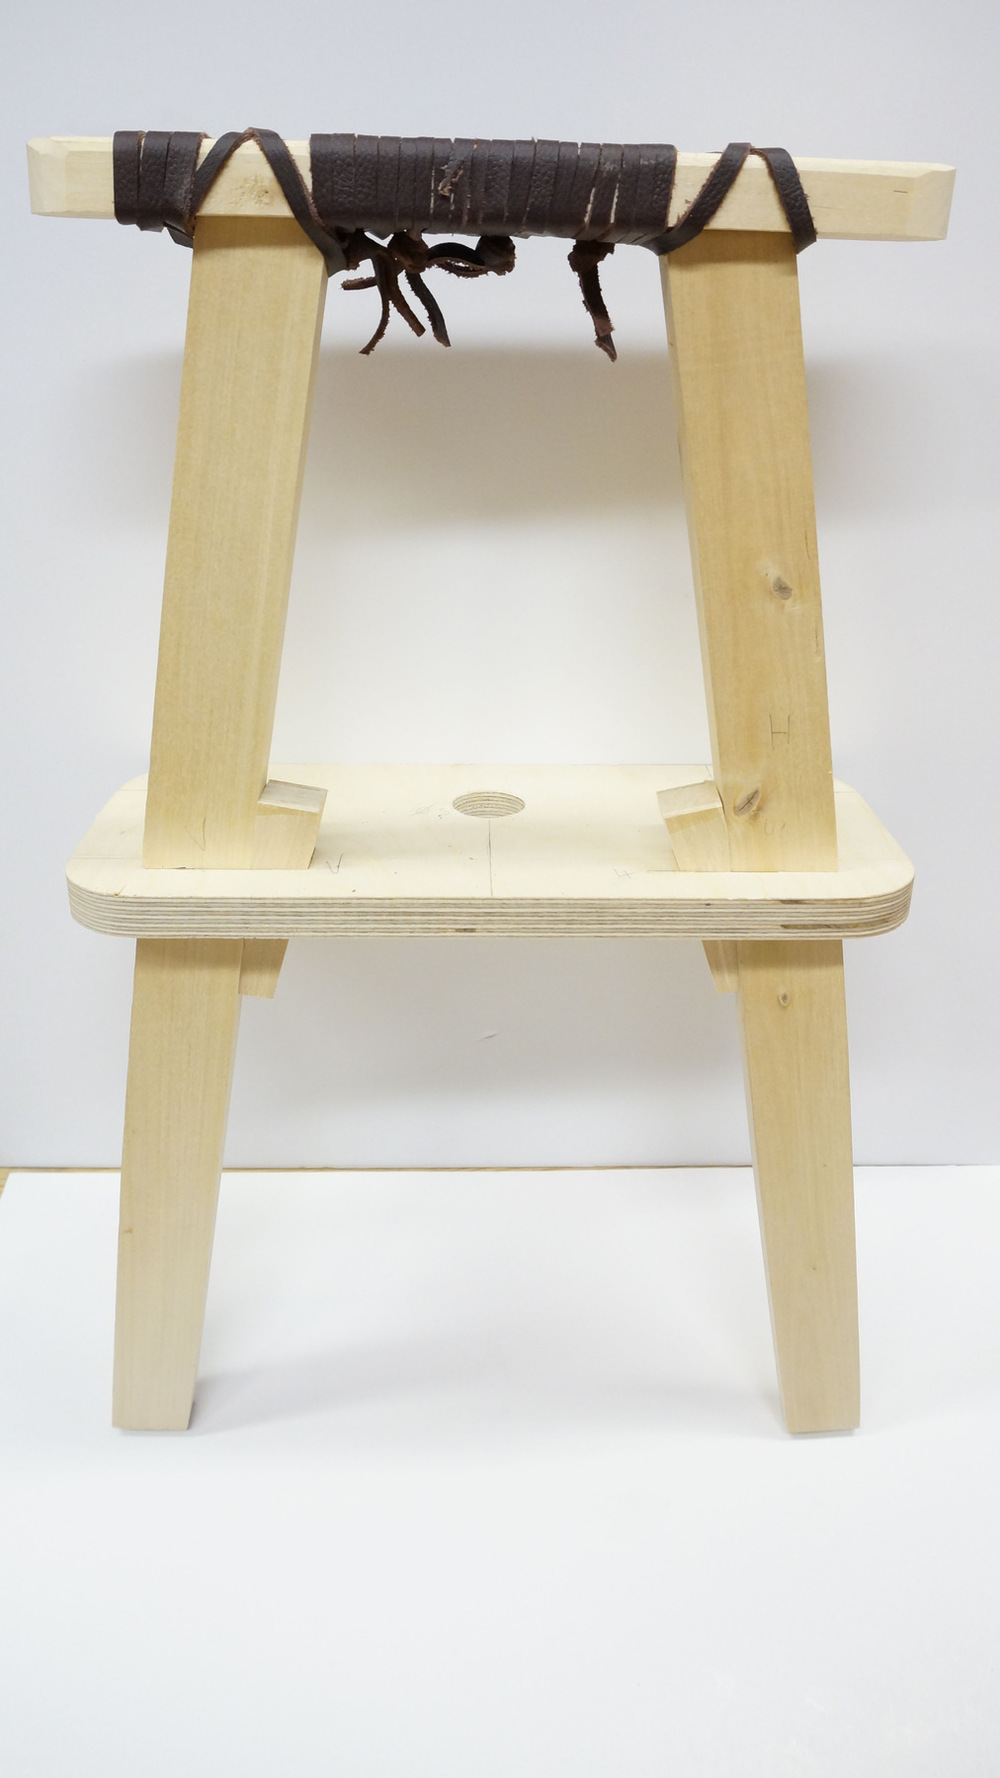 Dackelid Form - I found a nice way to join the legs, seat and armrest